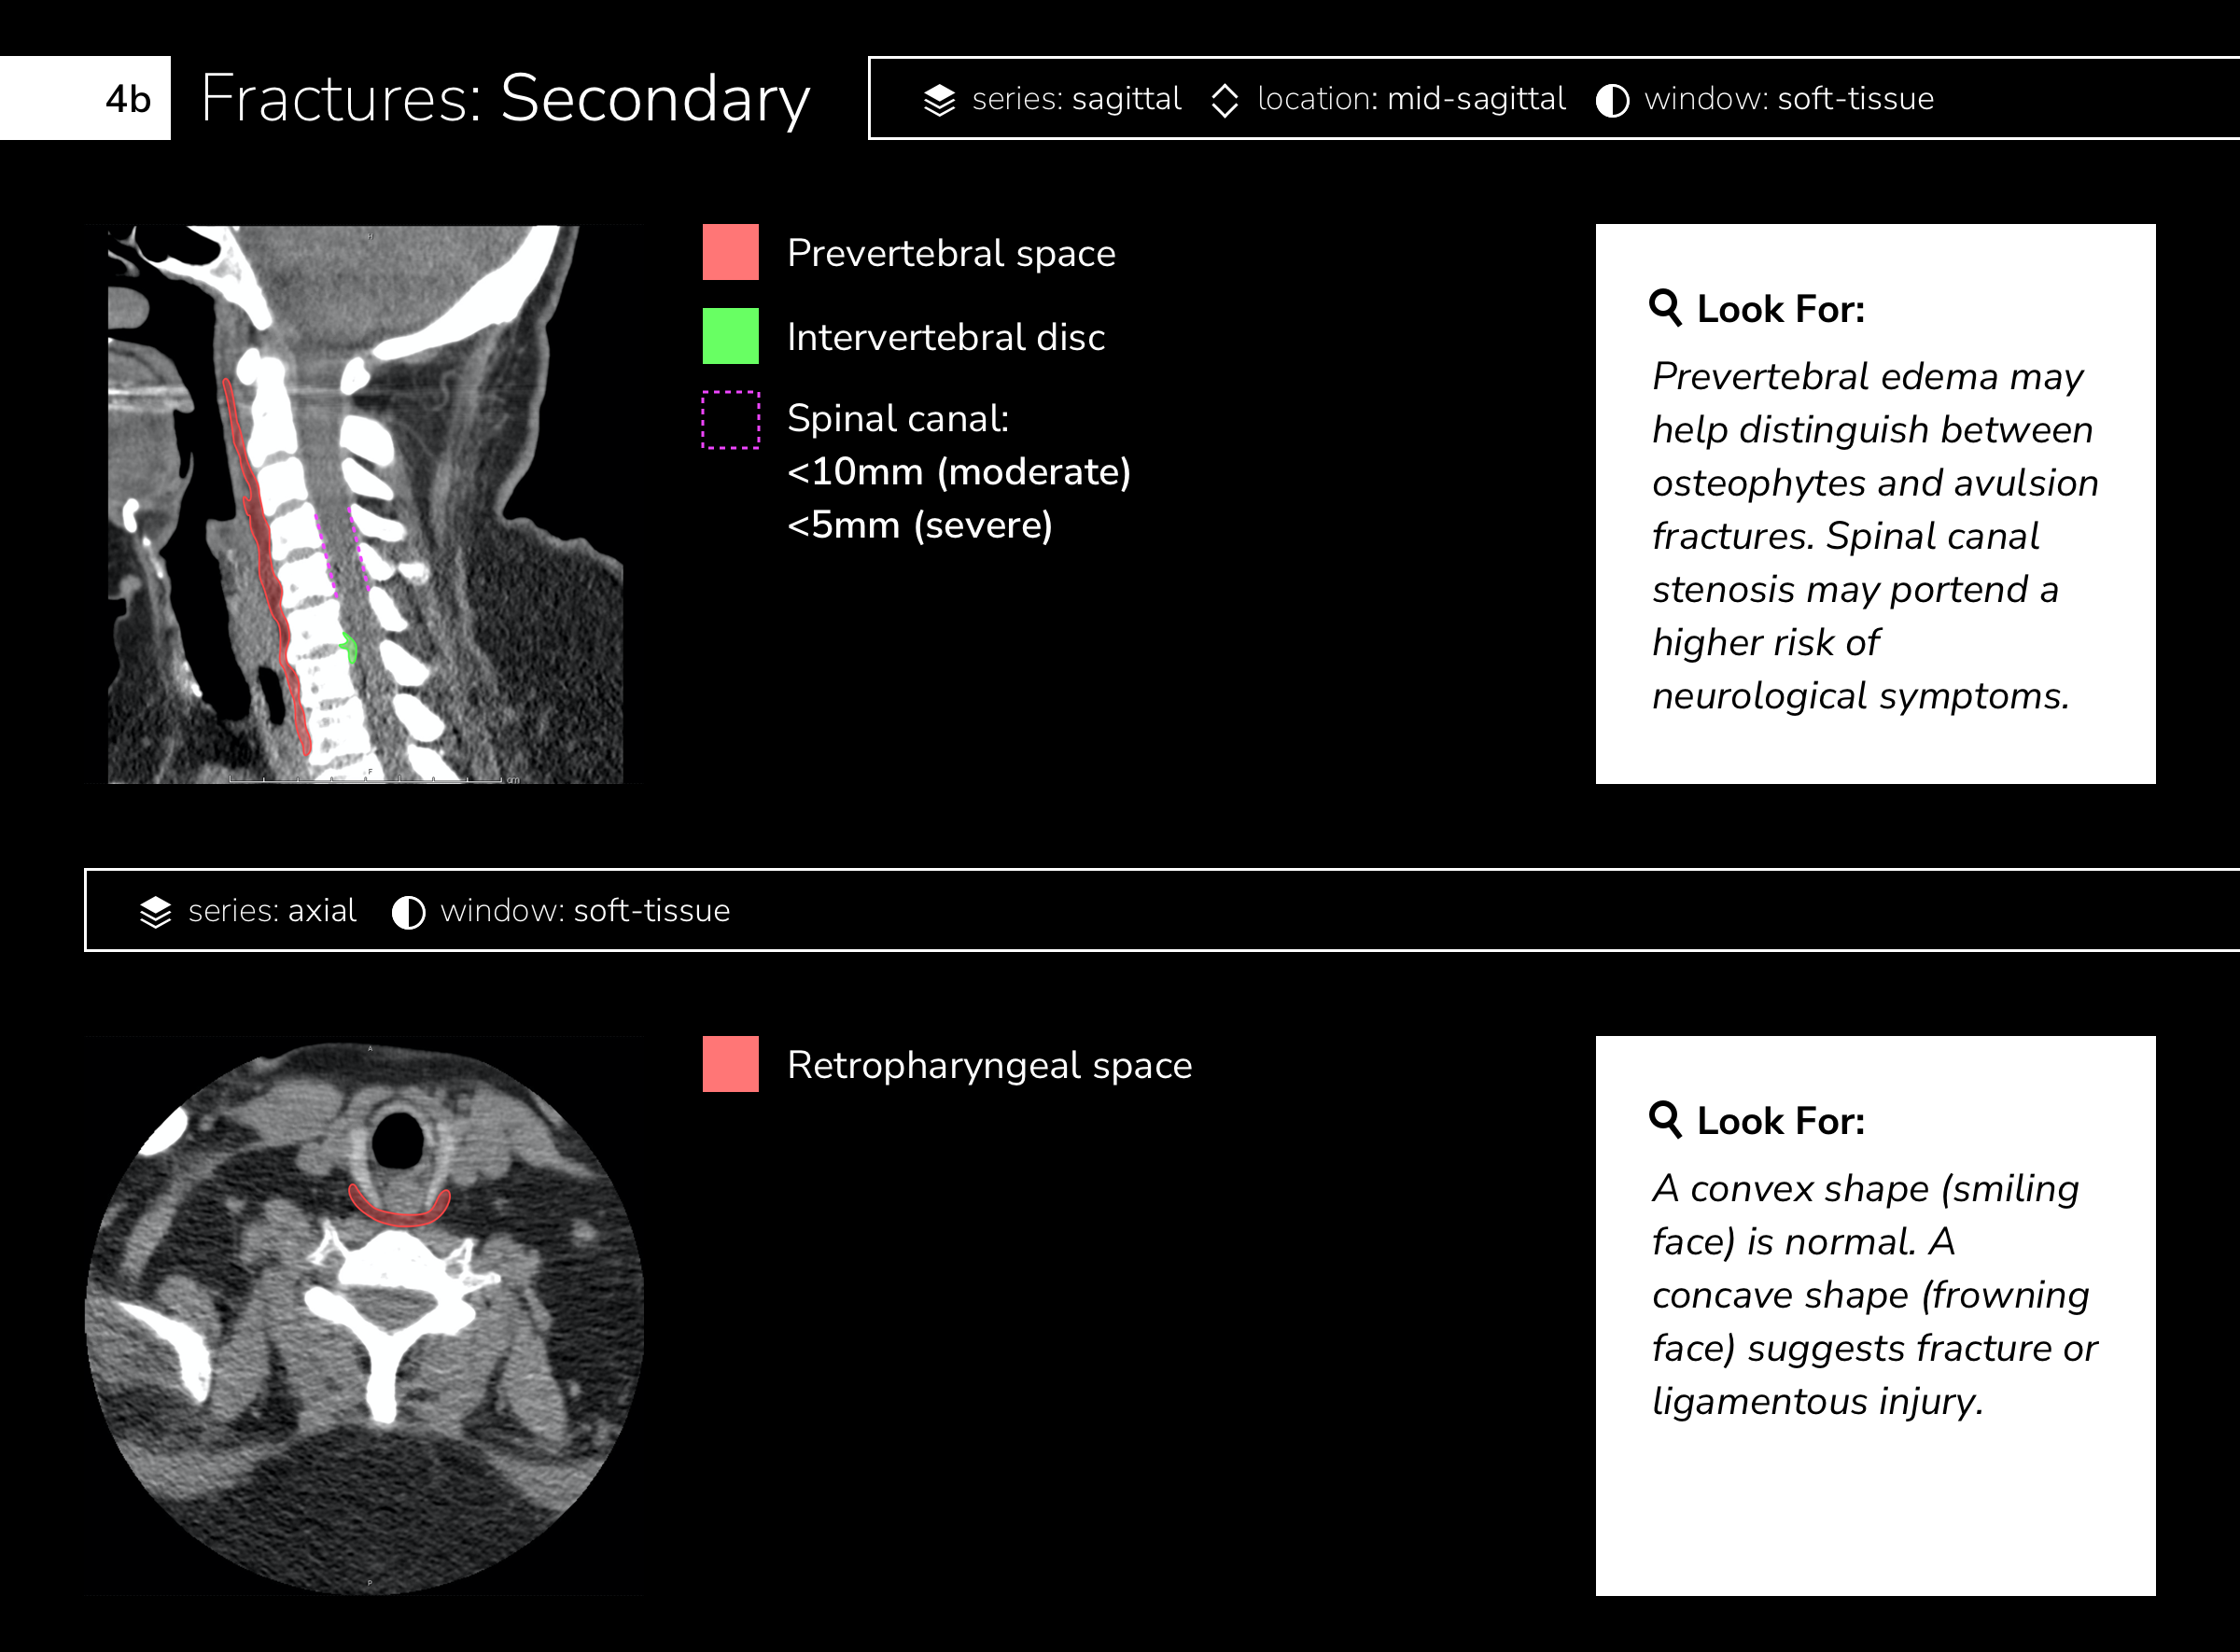 Fractures: Secondary